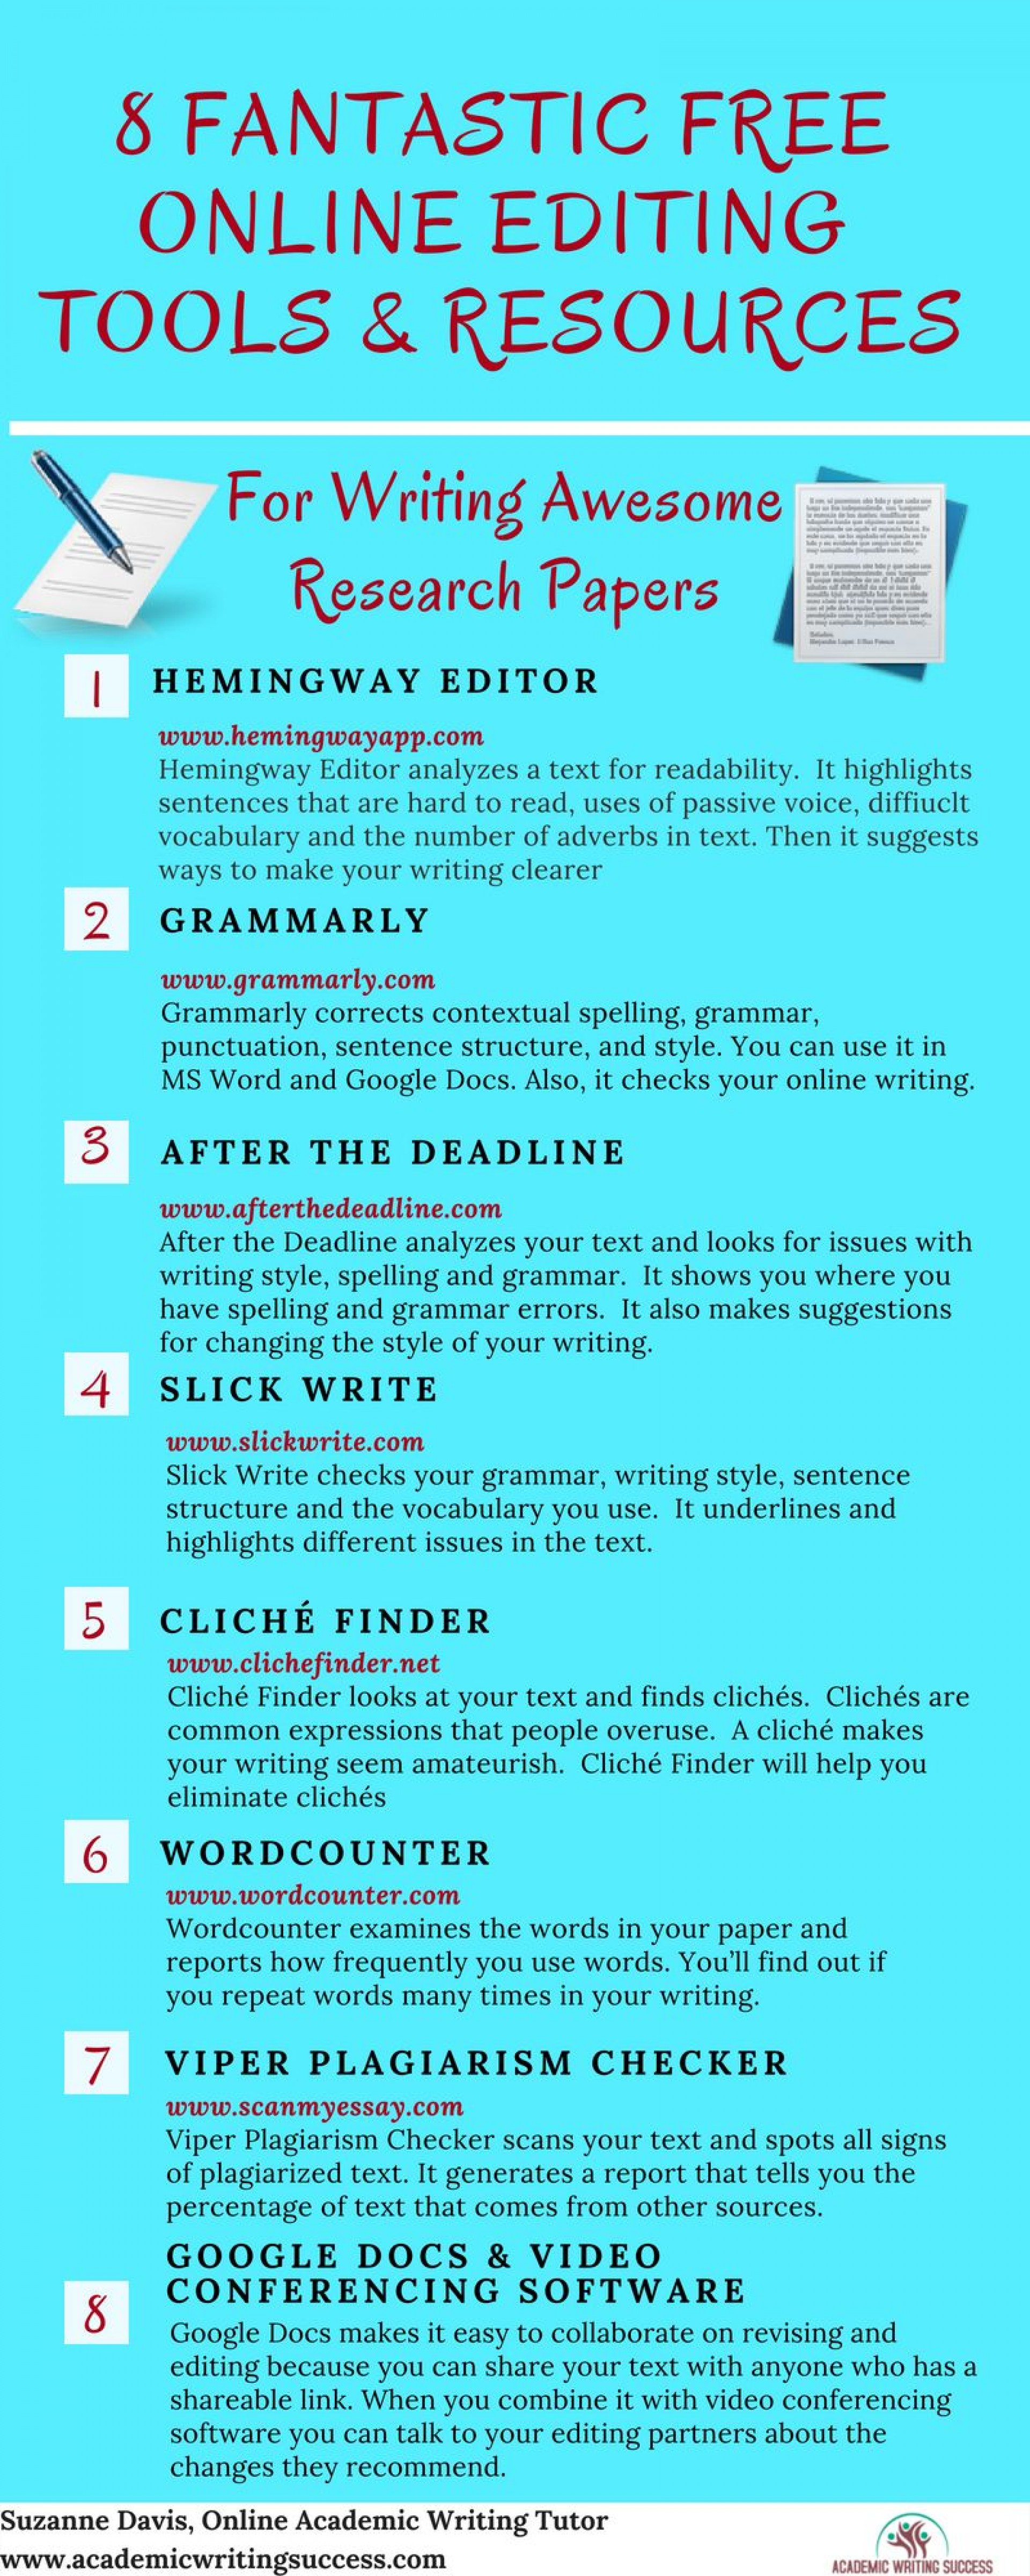 001 Research Paper Free Online Stirring Papers Plagiarism Checker Psychology Download 1920